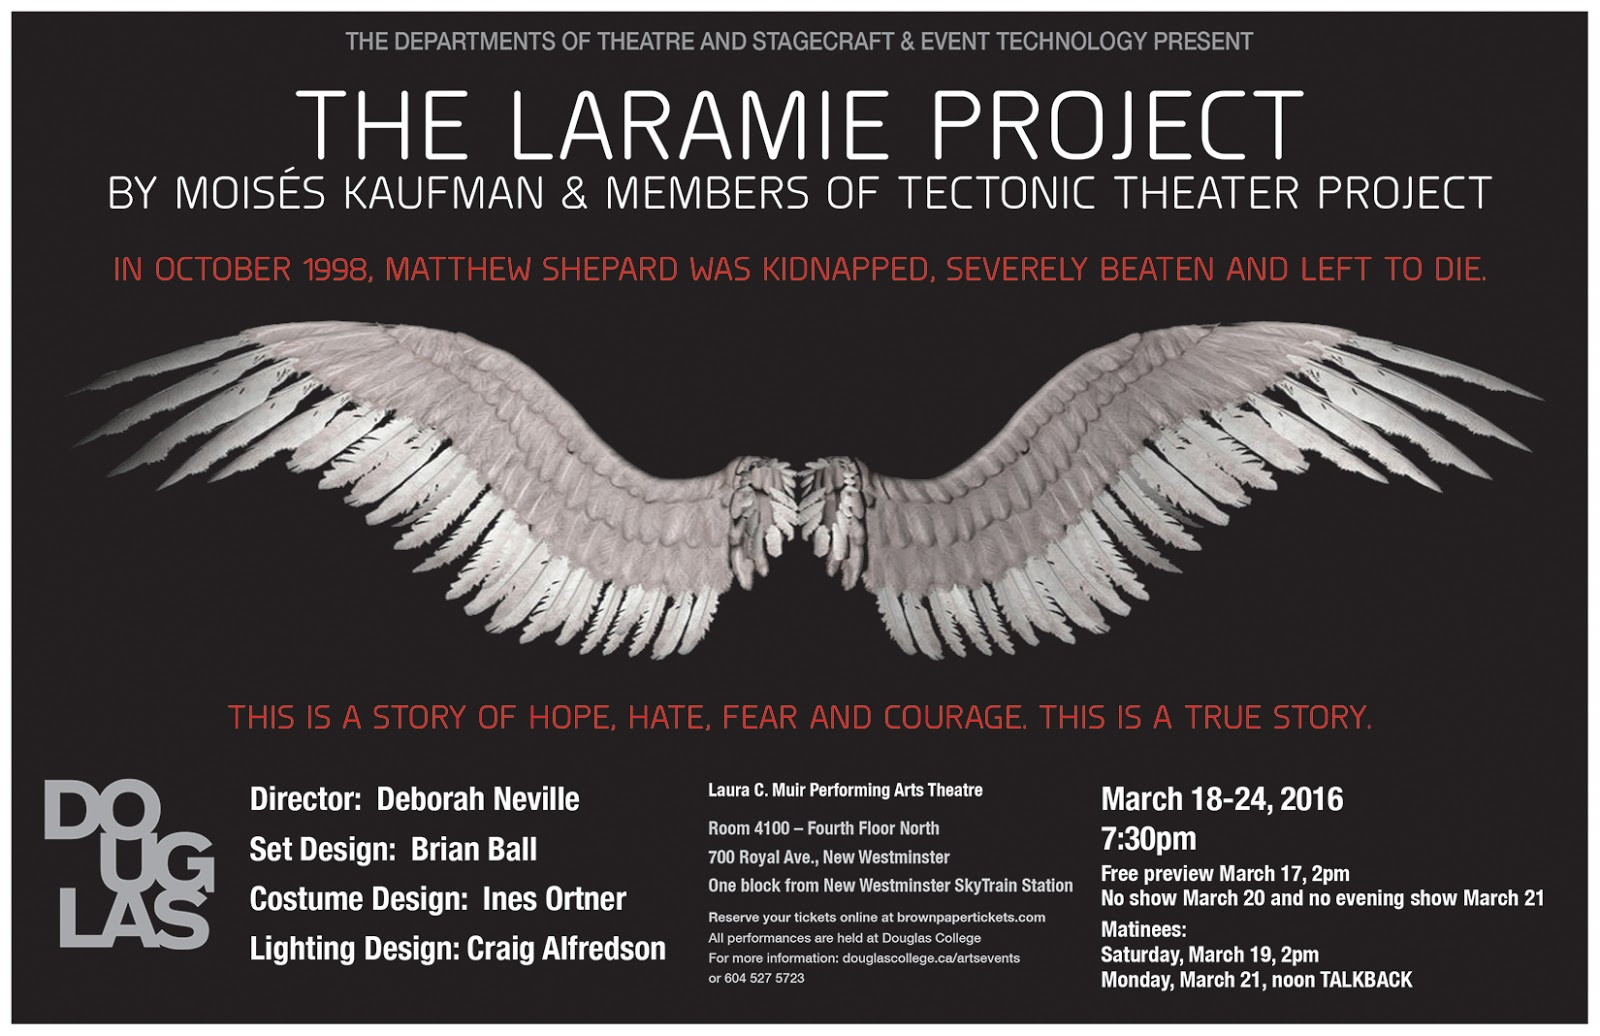 the laramie project summary The laramie project is a breathtaking theatrical collage that explores the depths to which humanity can sink and the heights of compassion of which we are capable details cast attributes : expandable casting, flexible casting.